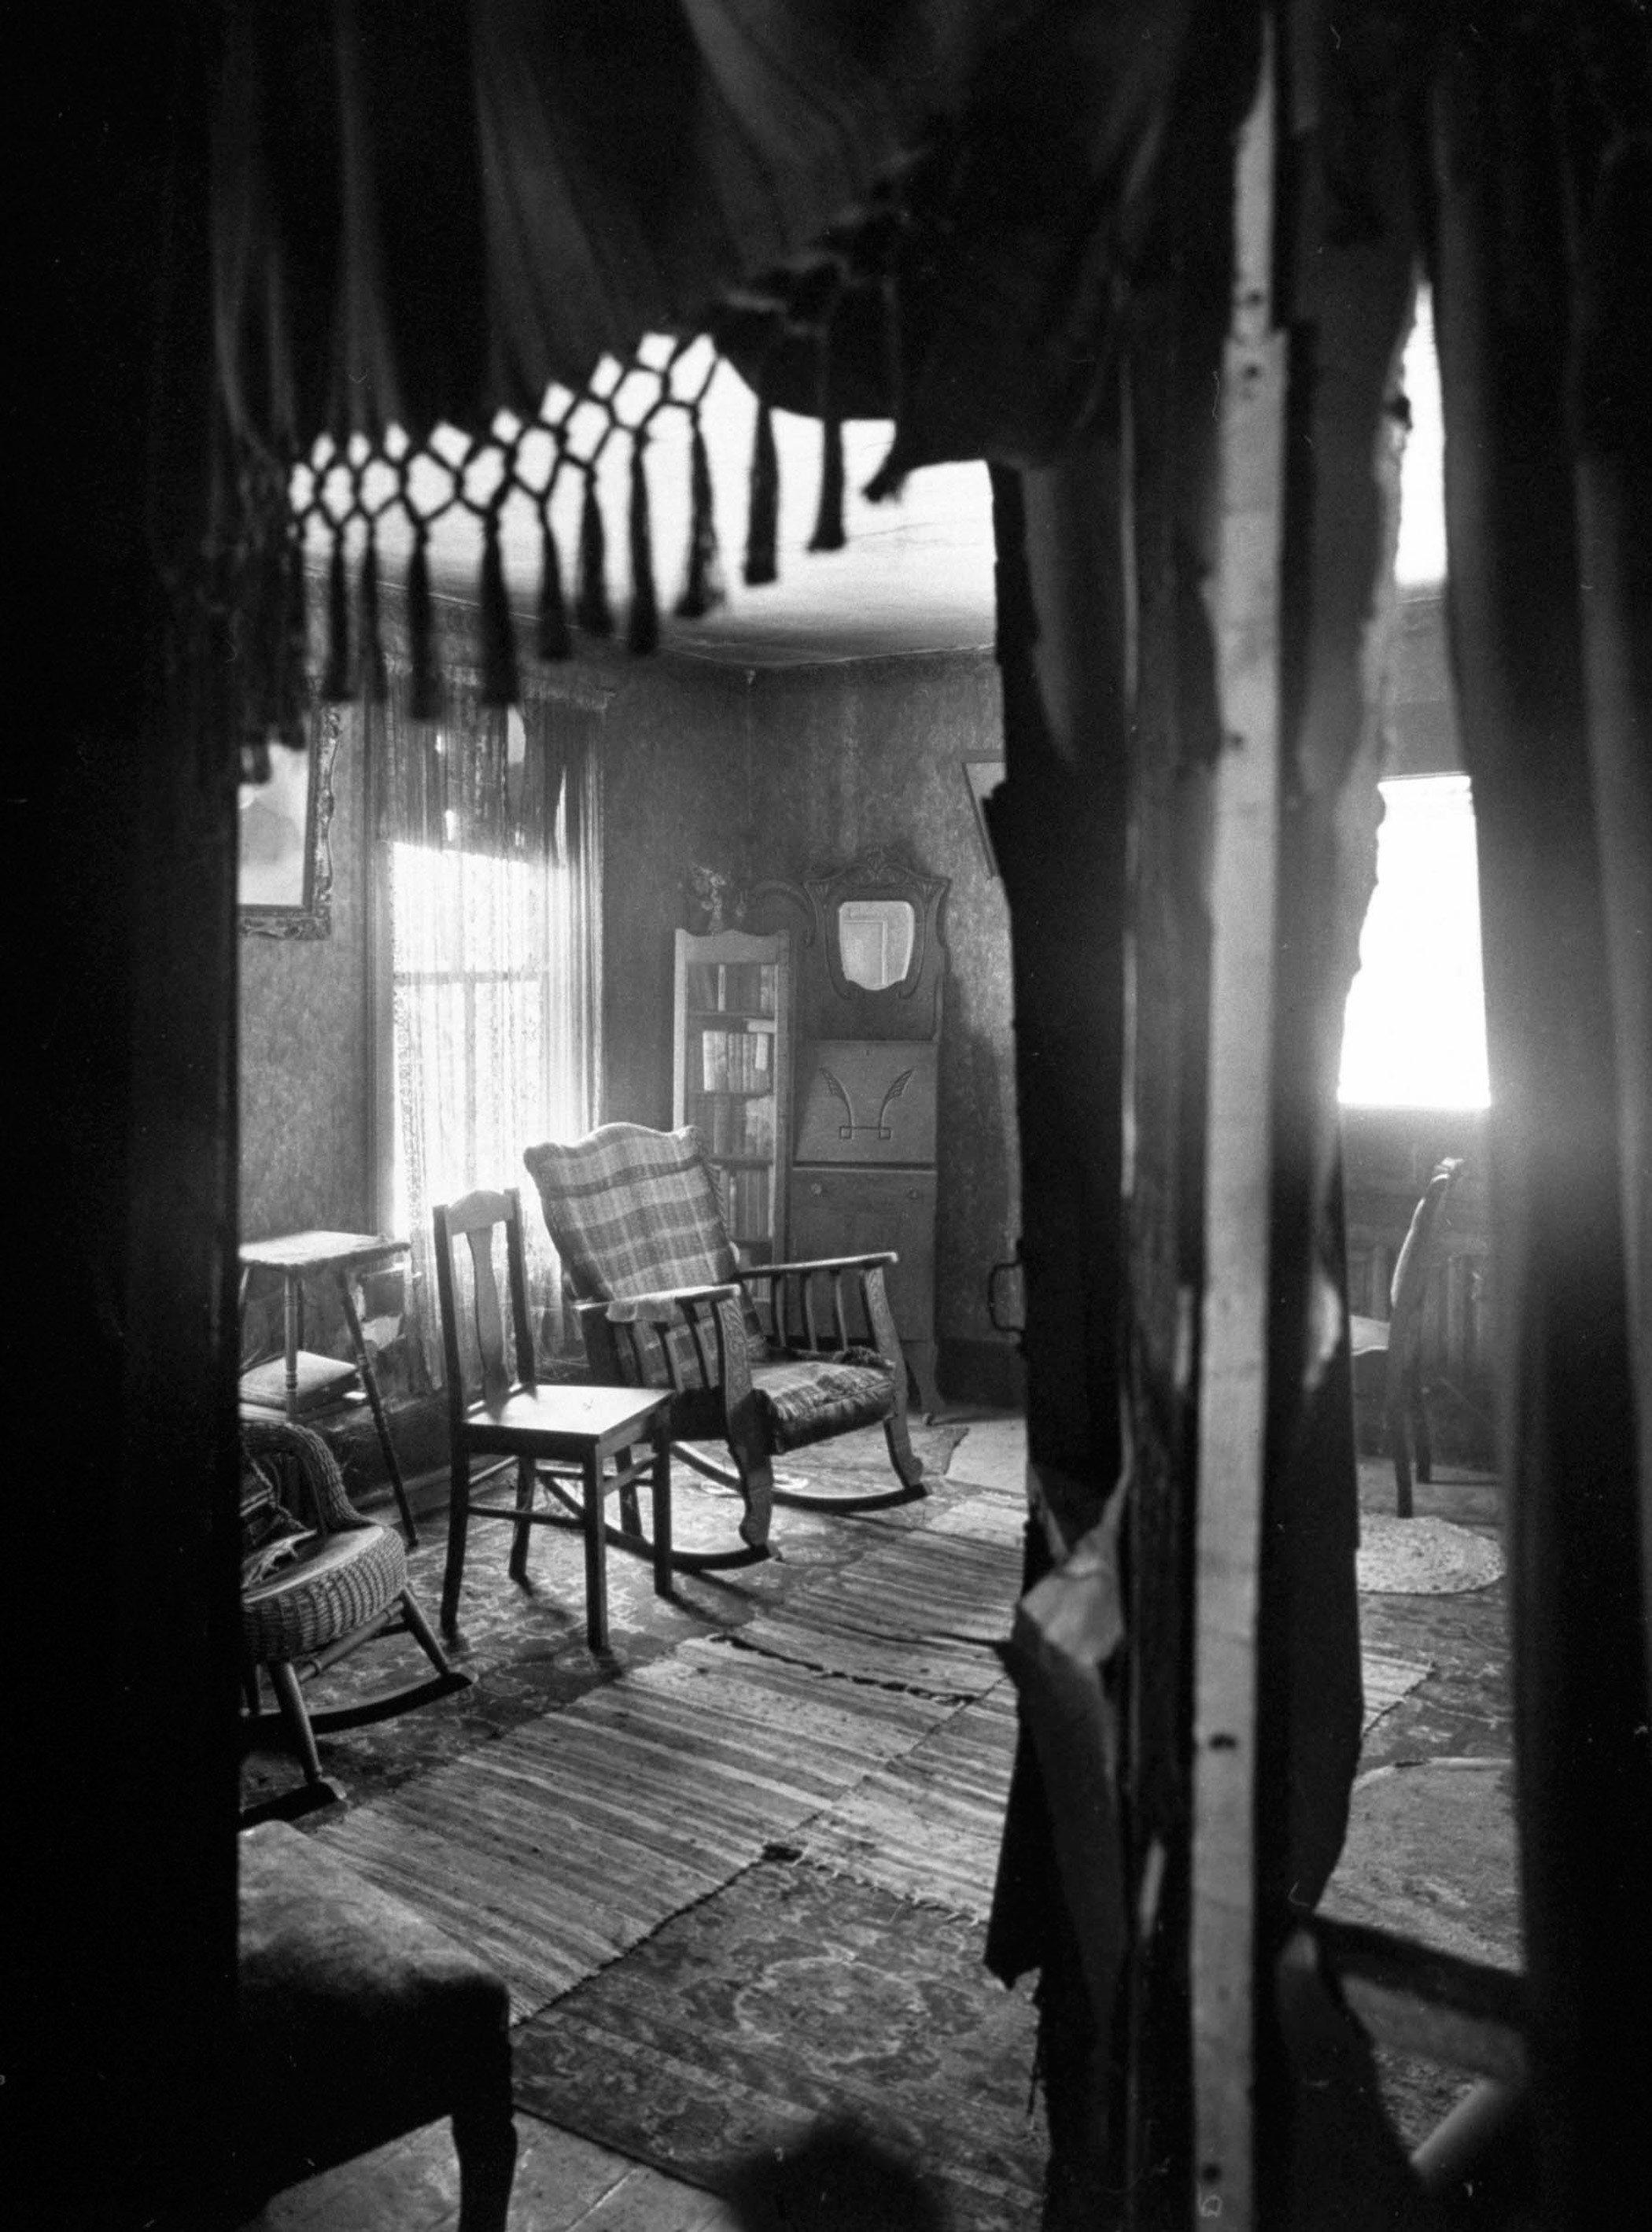 Neat, uncluttered room in alleged mass murderer Ed Gein's house which his mother had occupied; room was never used after her death and is in stark contrast to filthy, cluttered rooms in rest of the house, where parts of his victim's bodies were found.